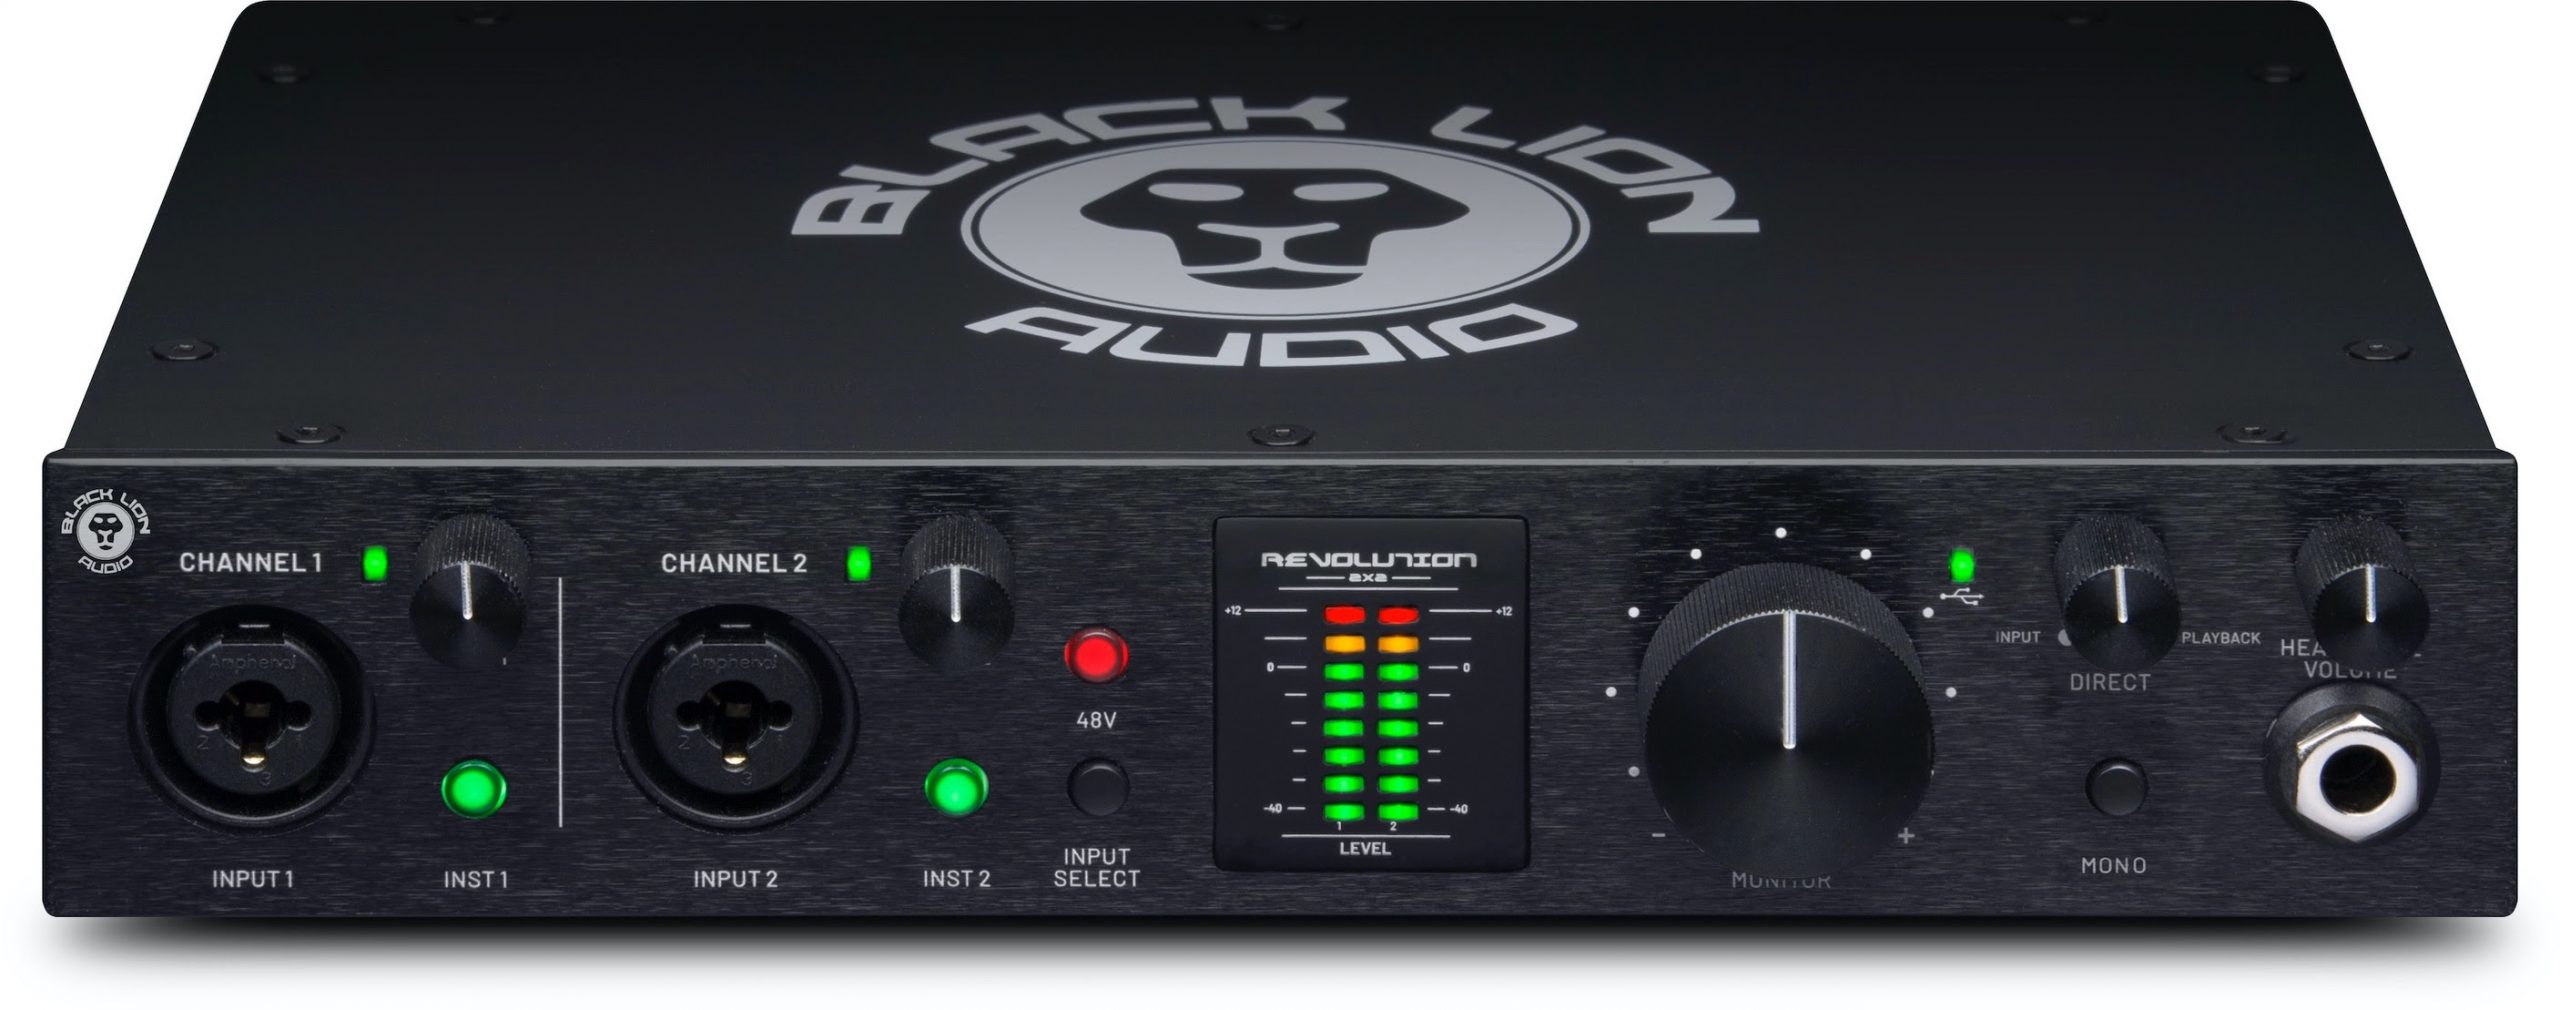 Black Lion Audio revolutionises bus-powered, portable audio interface market with first studio-grade desktop model of its own making